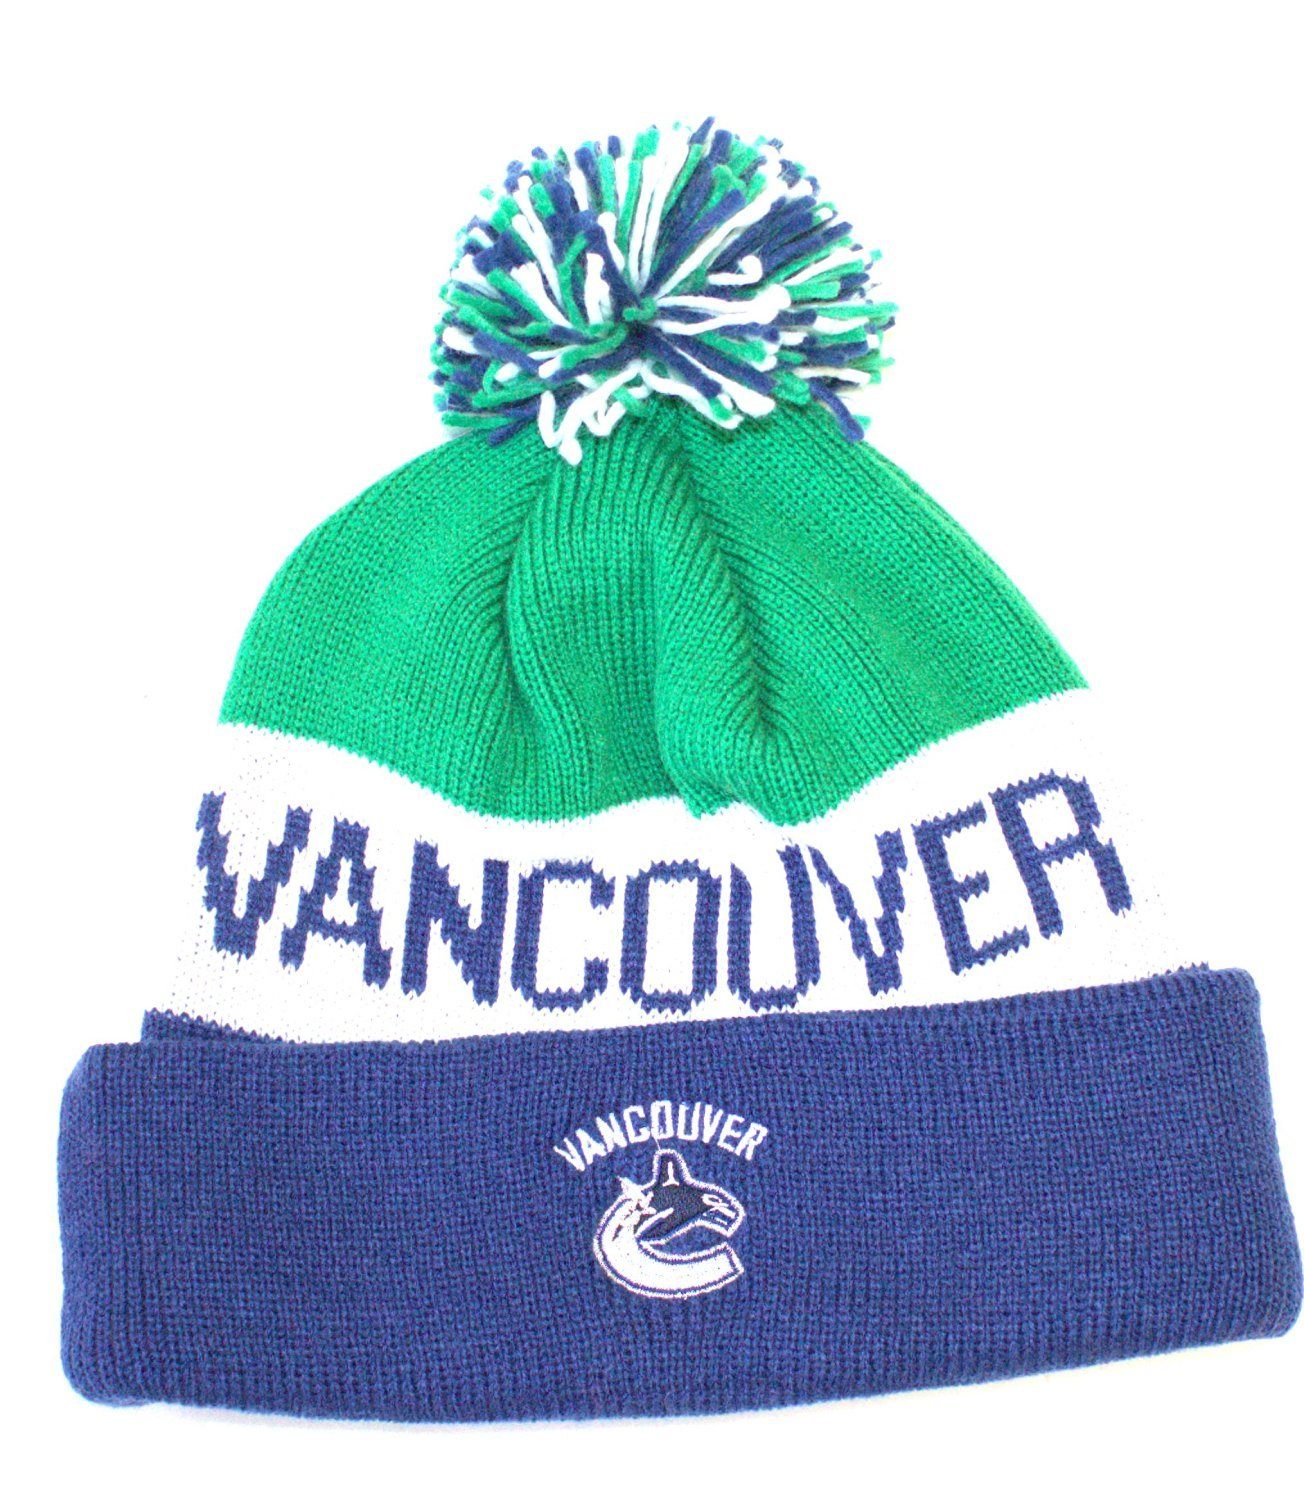 8d6ab54ff91 Amazon.com   NHL Officially Licensed Vancouver Canucks Blue Green Striped  Team Name Cuffed Pom Beanie Hat Cap Lid Skull   Sports   Outdoors